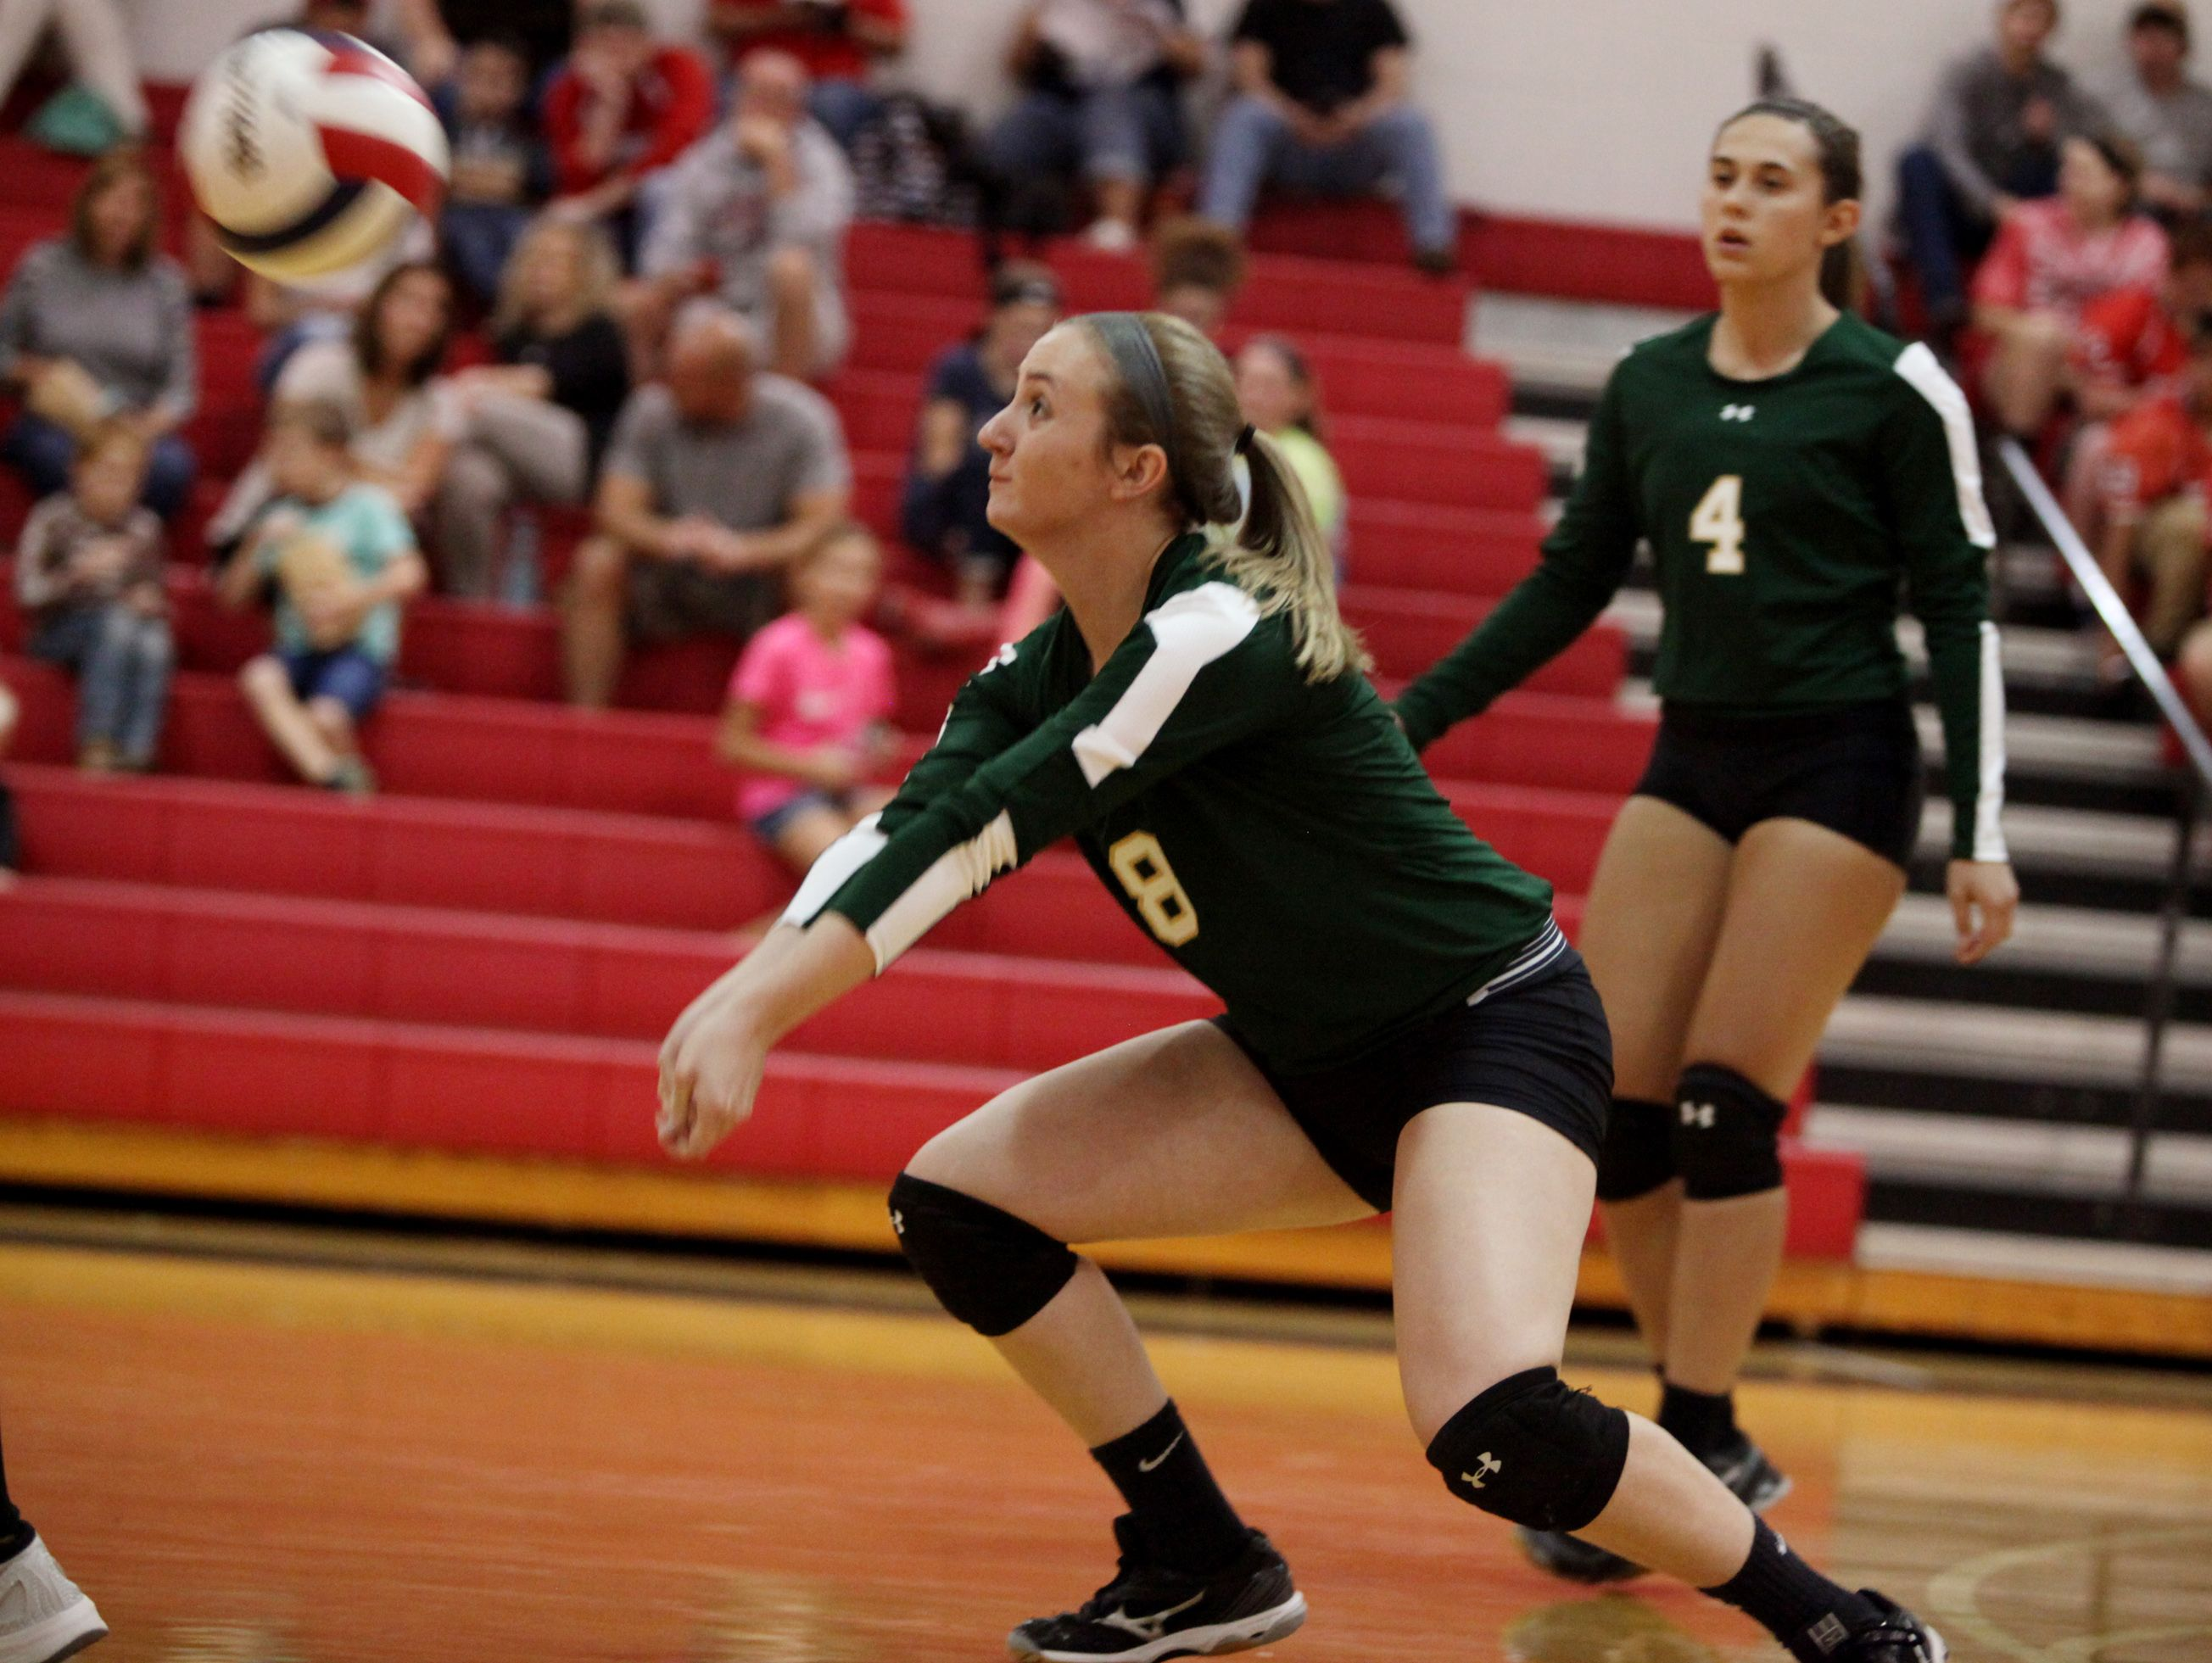 Wilson Memorial's Grace Carter bumps the ball during the volleyball game at Riverheads High School on Tuesday, Sept. 27, 2016.